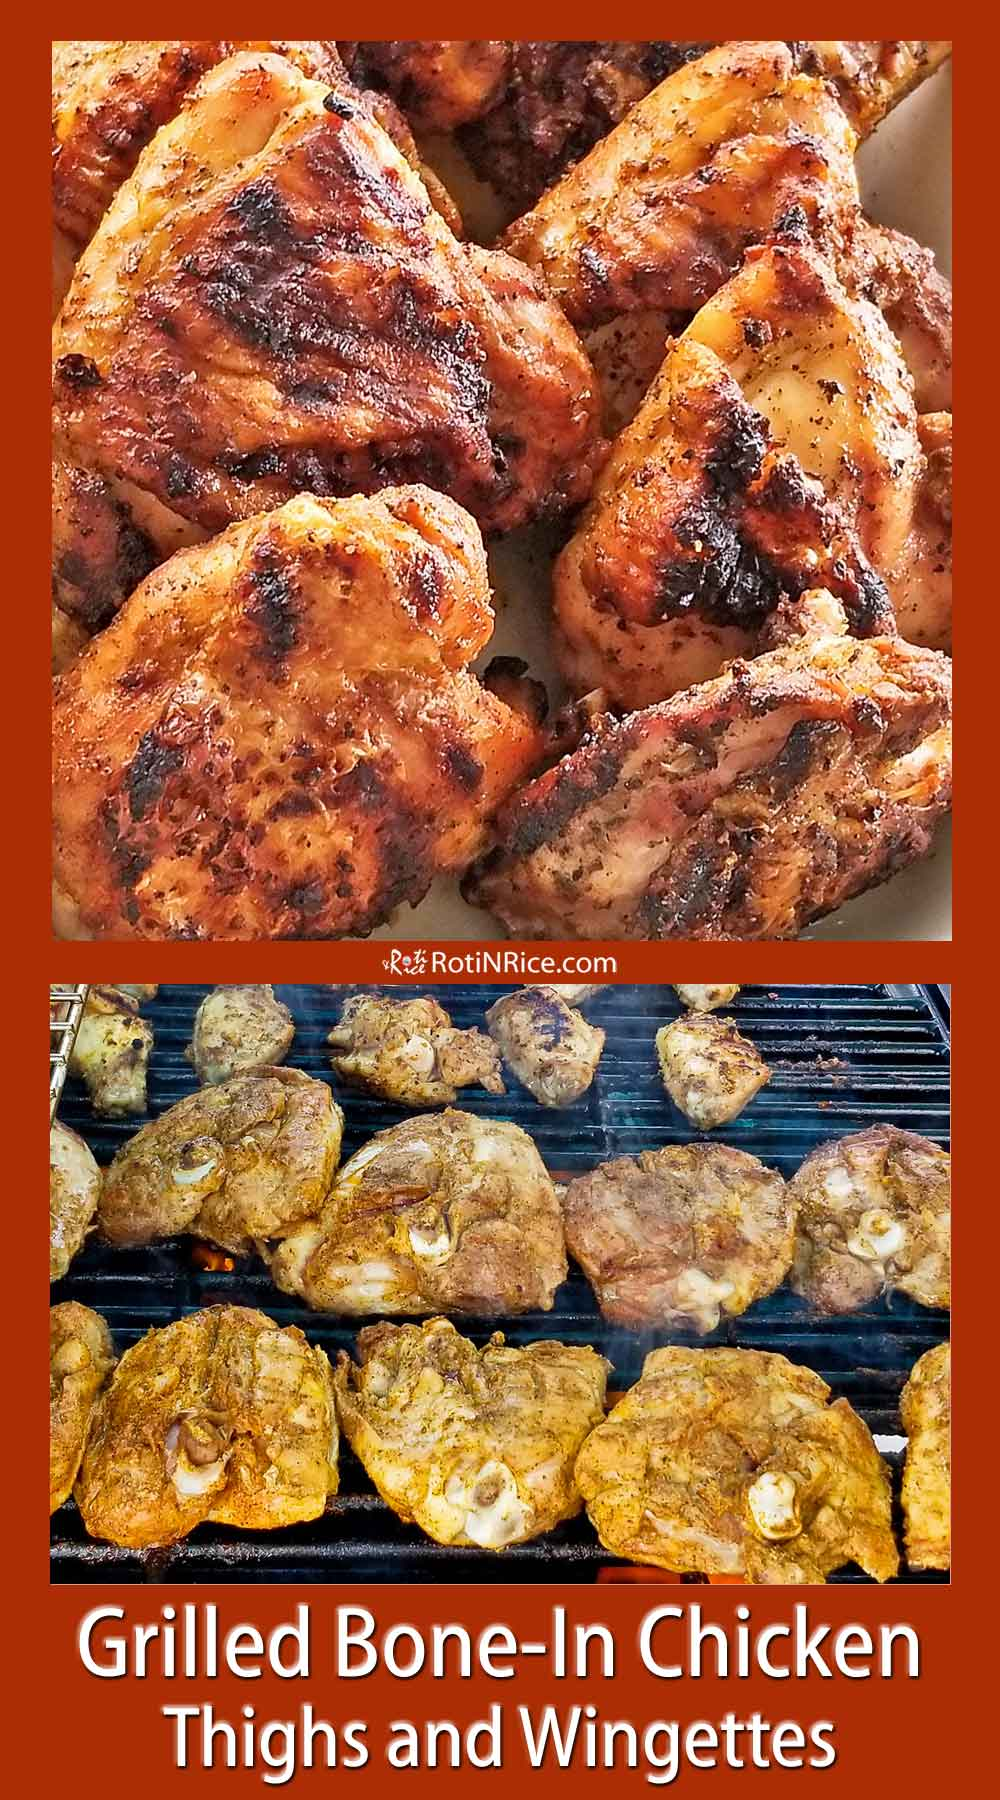 Grilled Bone-In Chicken Thighs and Wingettes